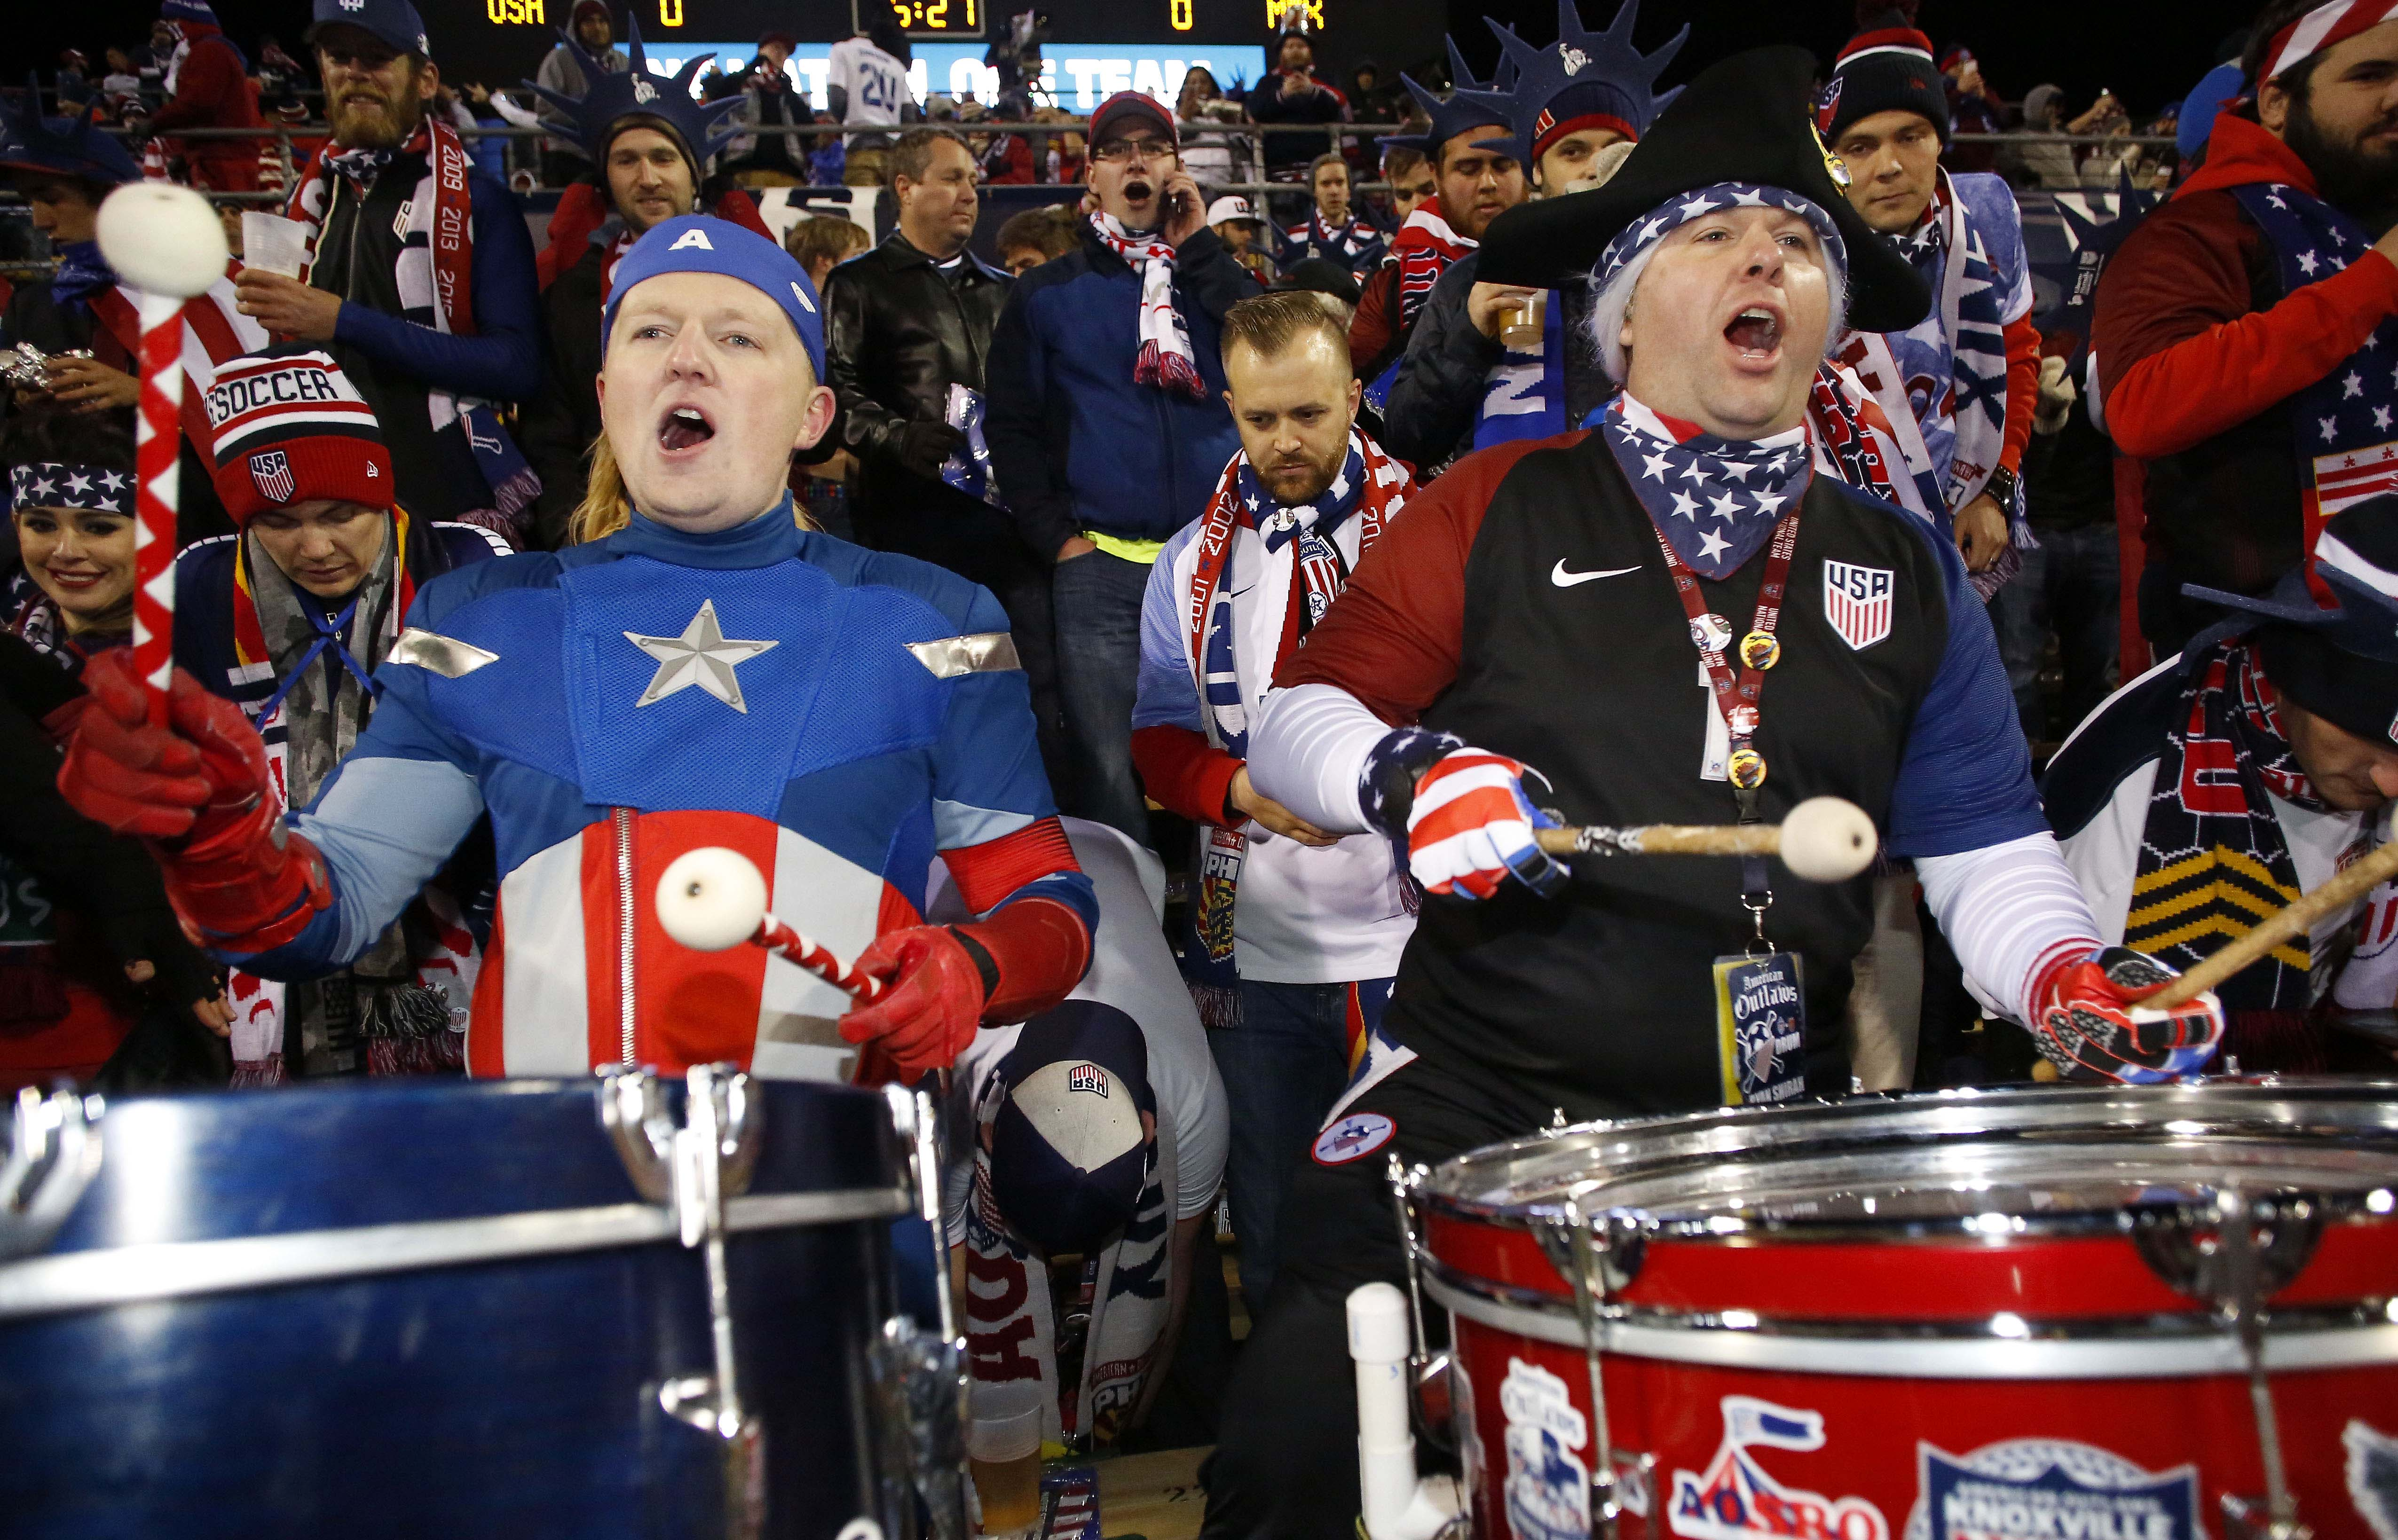 USA fans prior to the Team USA against Mexico match at MAPFRE Stadium, dressed as Captain America and a colonial patriot, both beat drums.